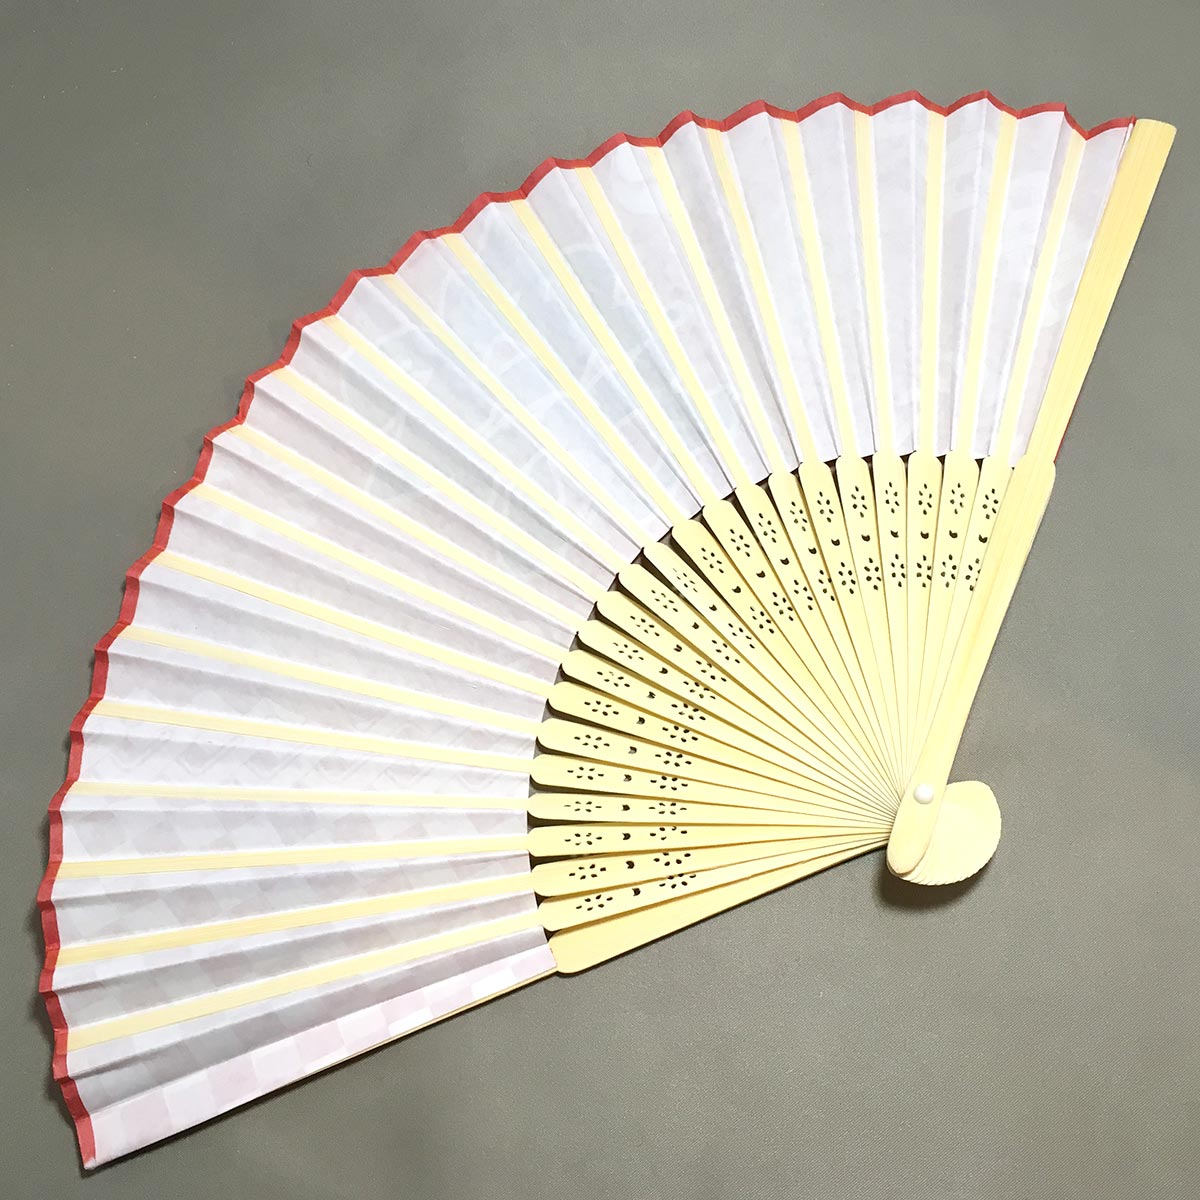 Folding Fan Festival Red - Fan opened back view